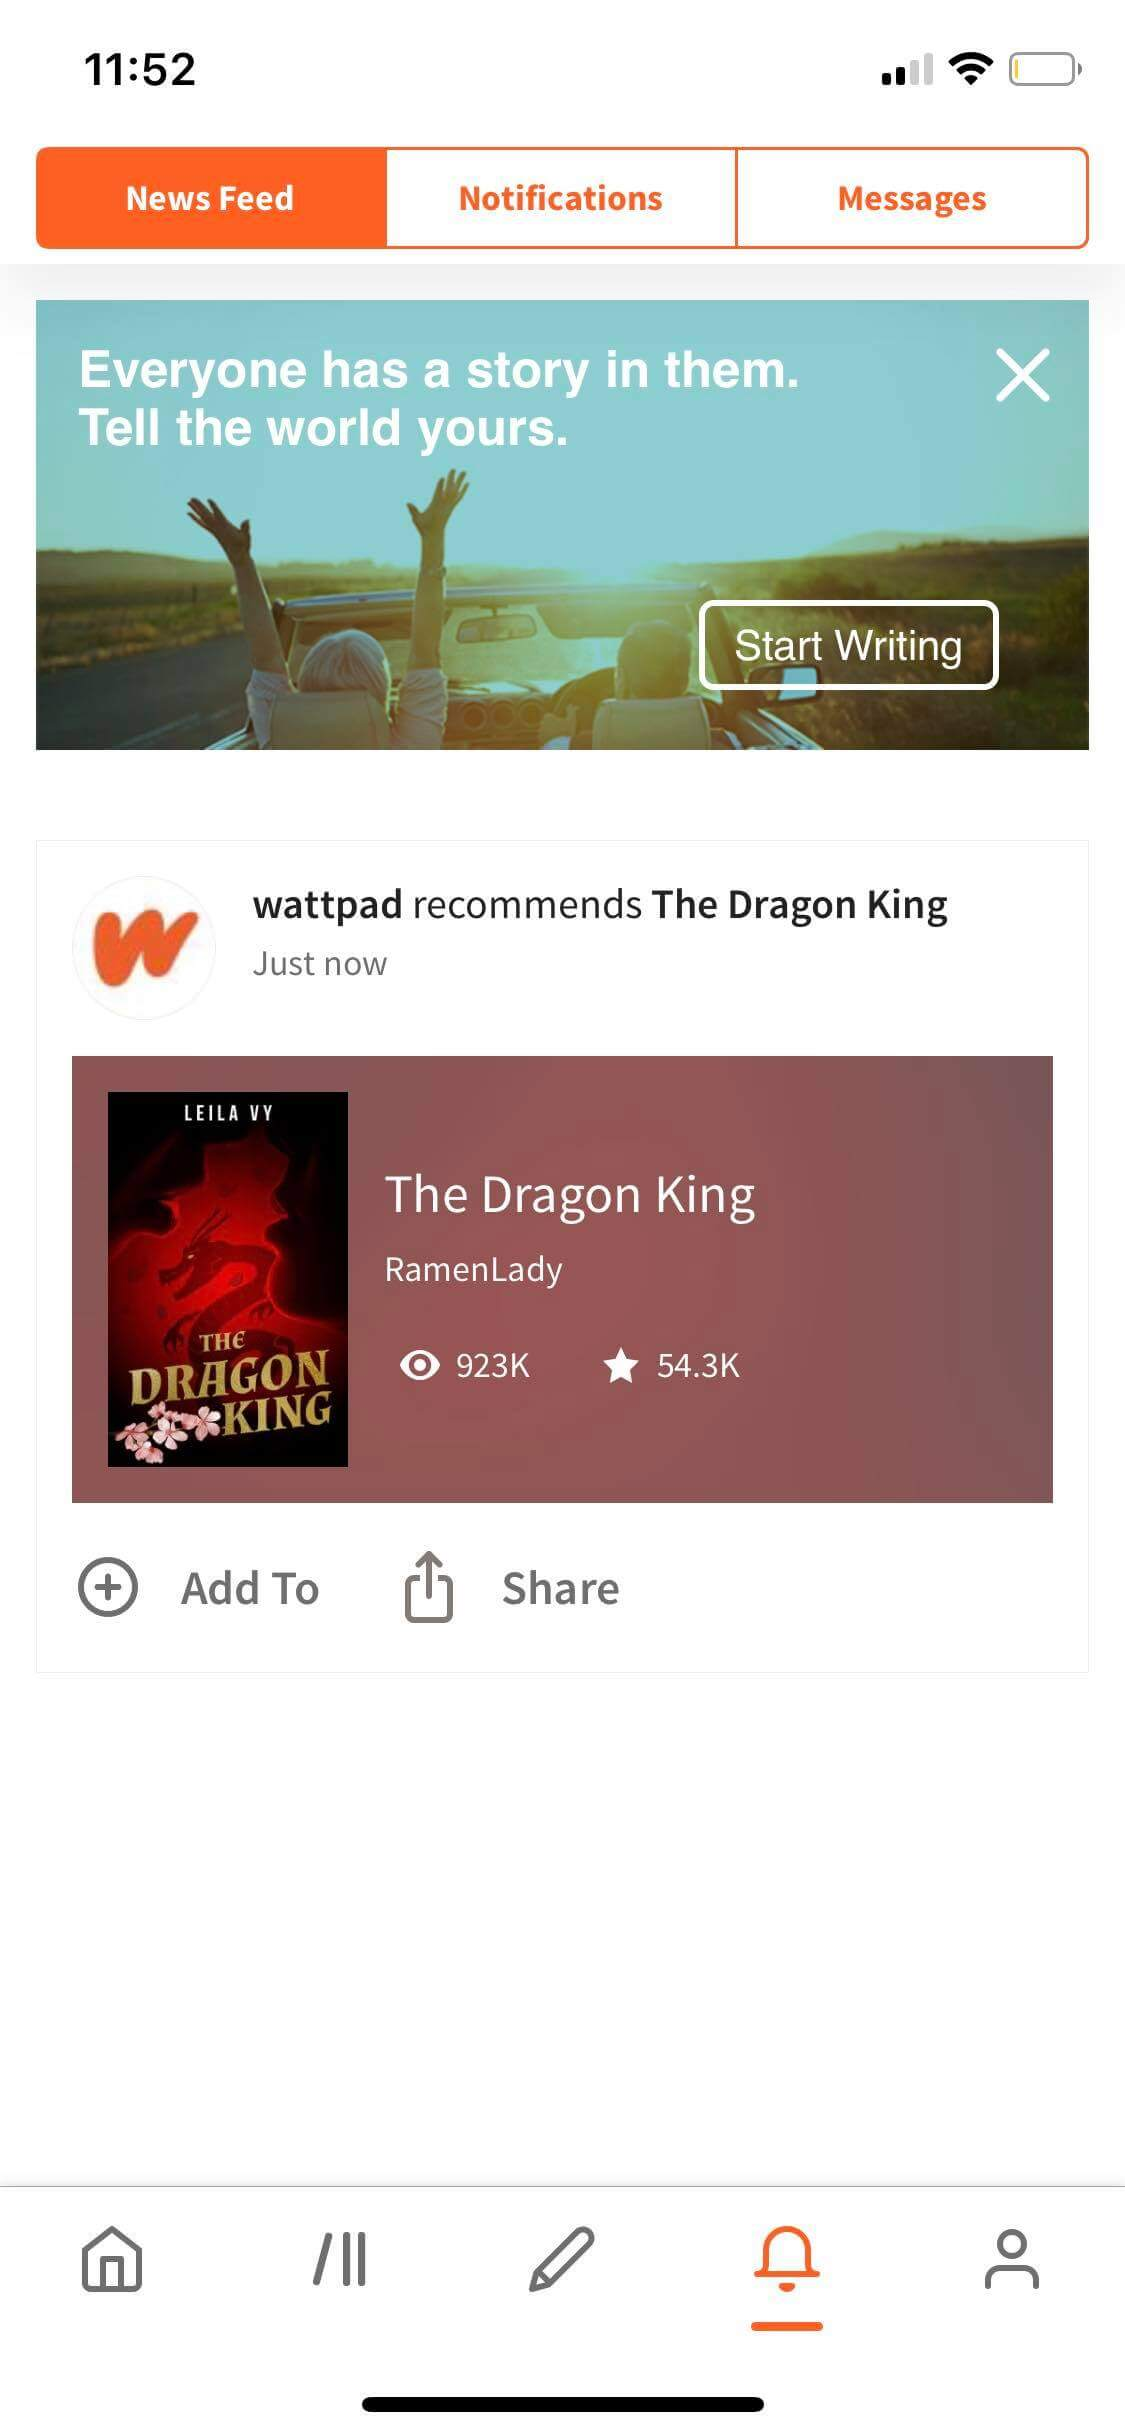 News Feed on iOS by Wattpad from UIGarage